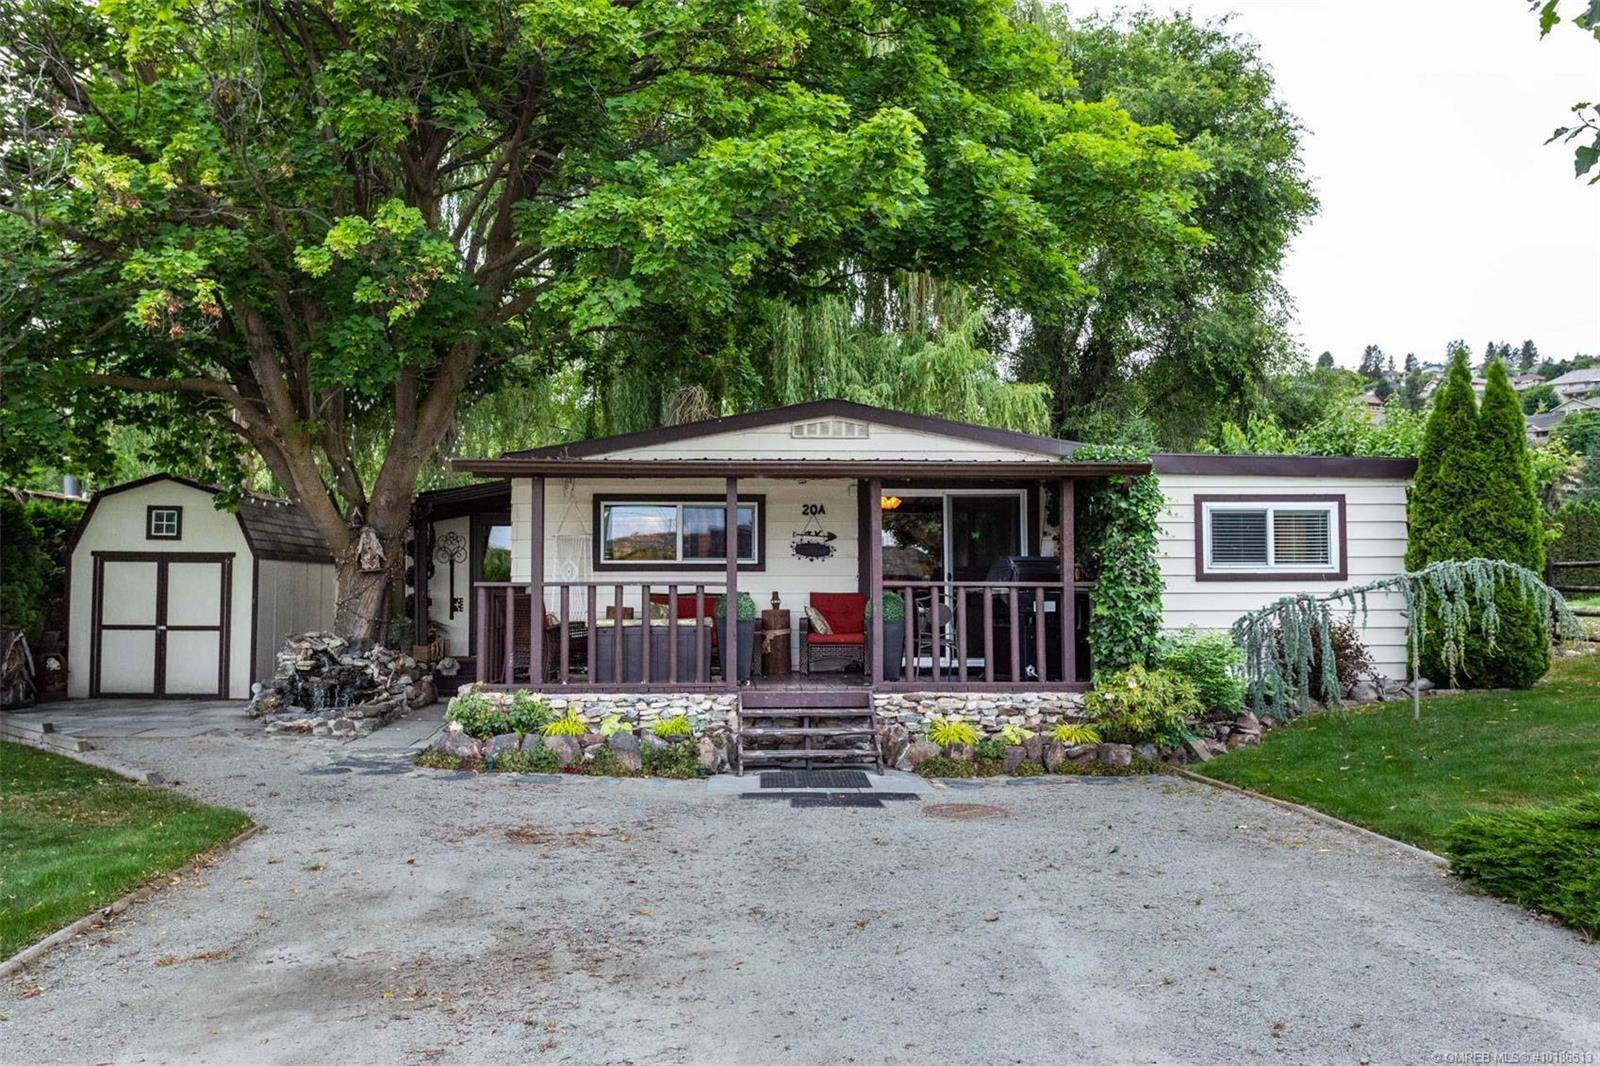 Home for sale at 1375 Green Bay Rd Unit 20a West Kelowna British Columbia - MLS: 10186513